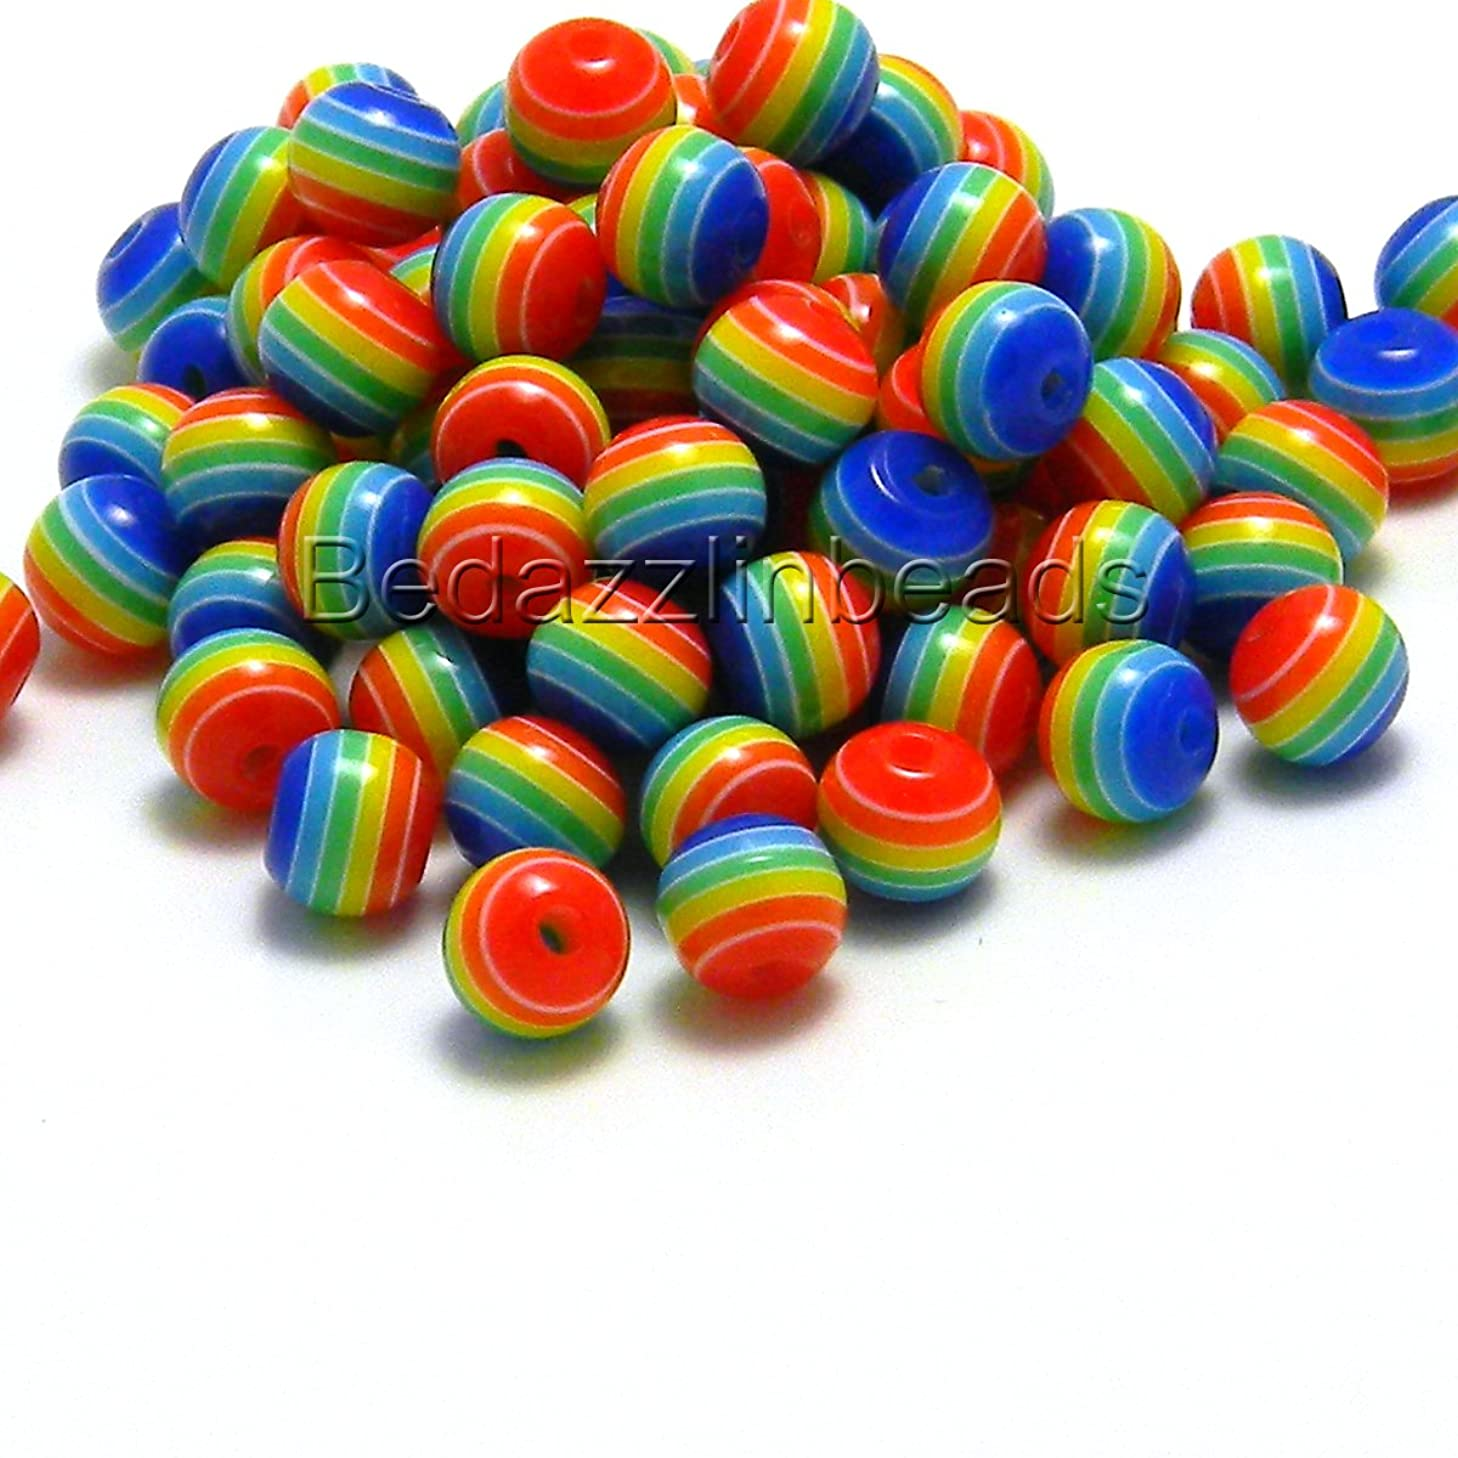 100 Rainbow Stripe 6mm Round Plastic Acrylic Resin Beads With Opaque Striped Lines